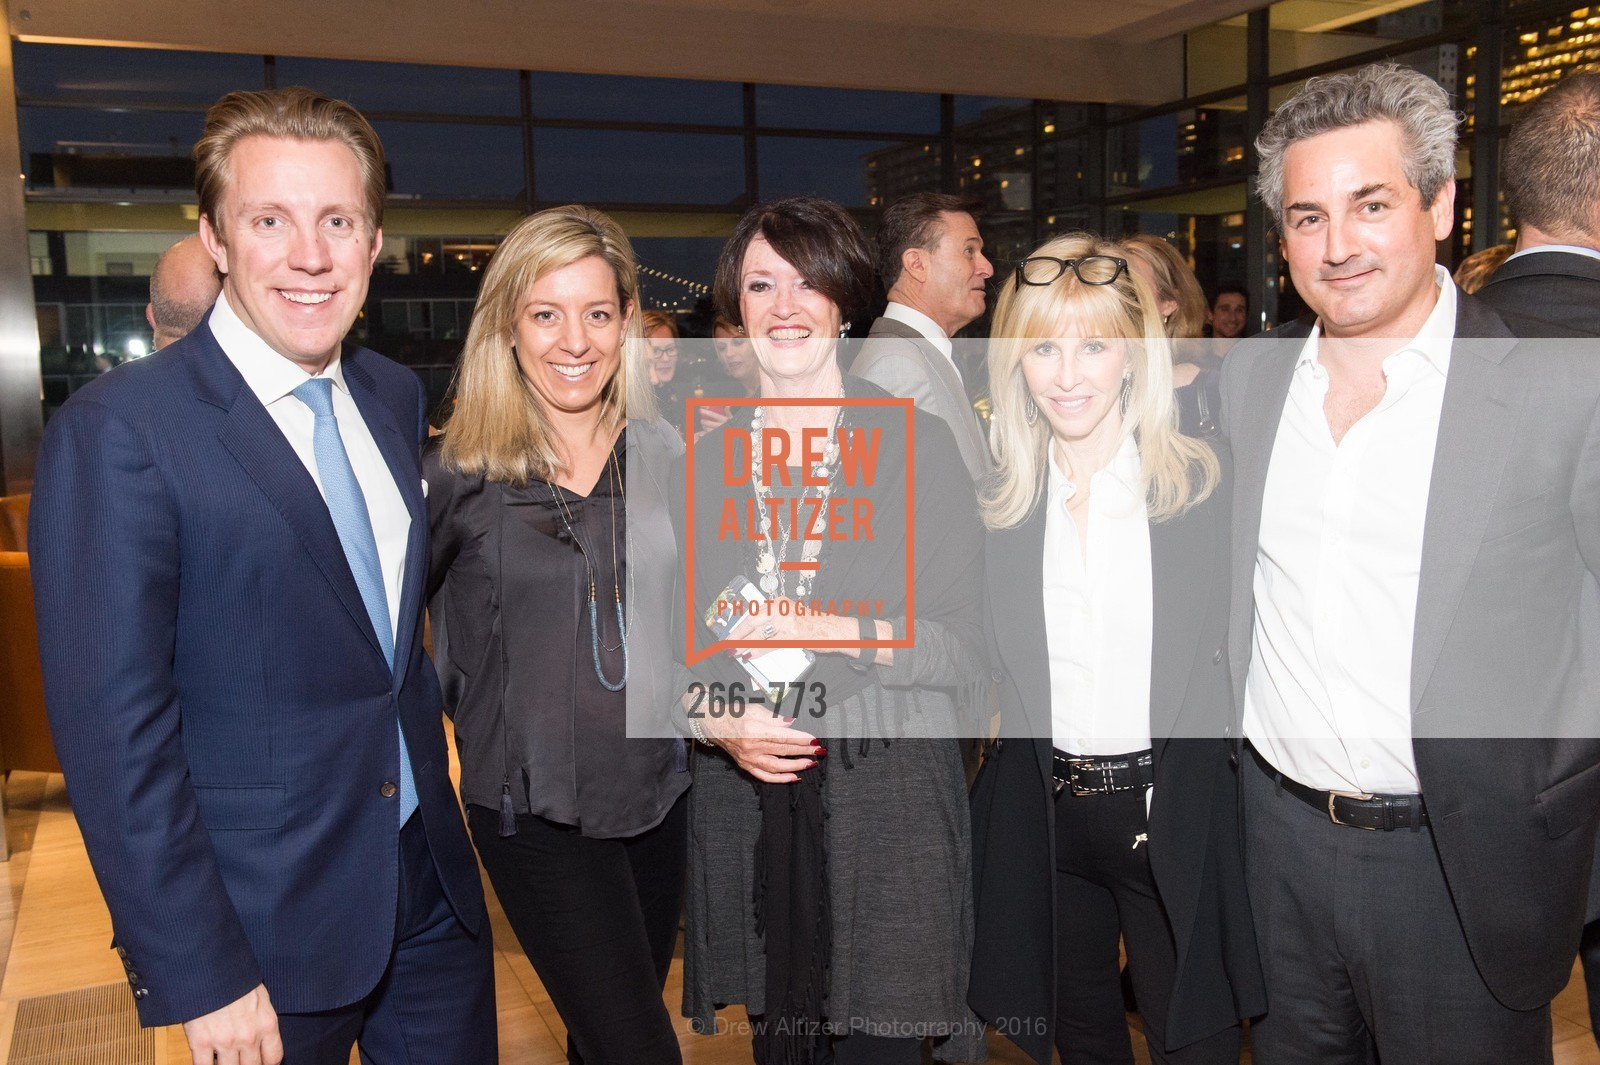 Brad Nelson, Dana Trotter, Suzanne Perkins, Ginger Martin, Jeremy Stein, Sotheby's International Realty's Celebrates the New Year, The Battery, Penthouse. 717 Battery St, January 27th, 2016,Drew Altizer, Drew Altizer Photography, full-service event agency, private events, San Francisco photographer, photographer California